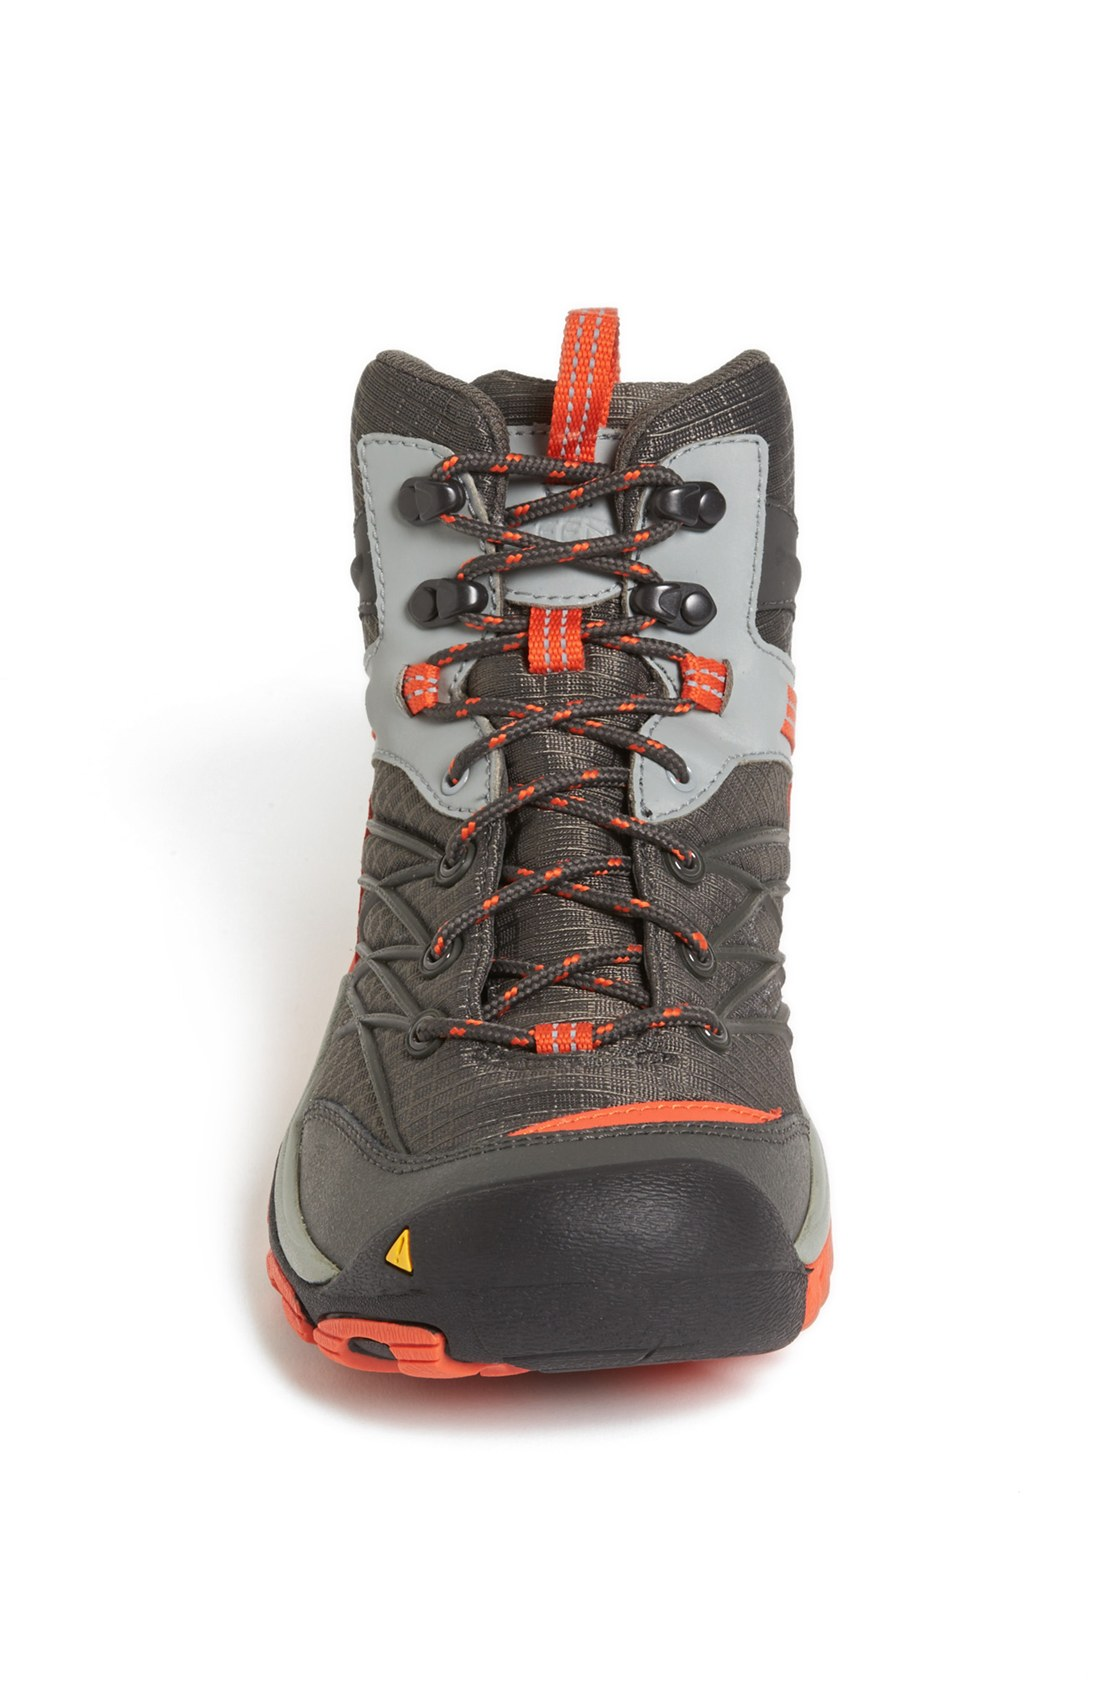 keen spicy orange marshall mid wp hiking boot product 3 13488240 722031799 jpeg